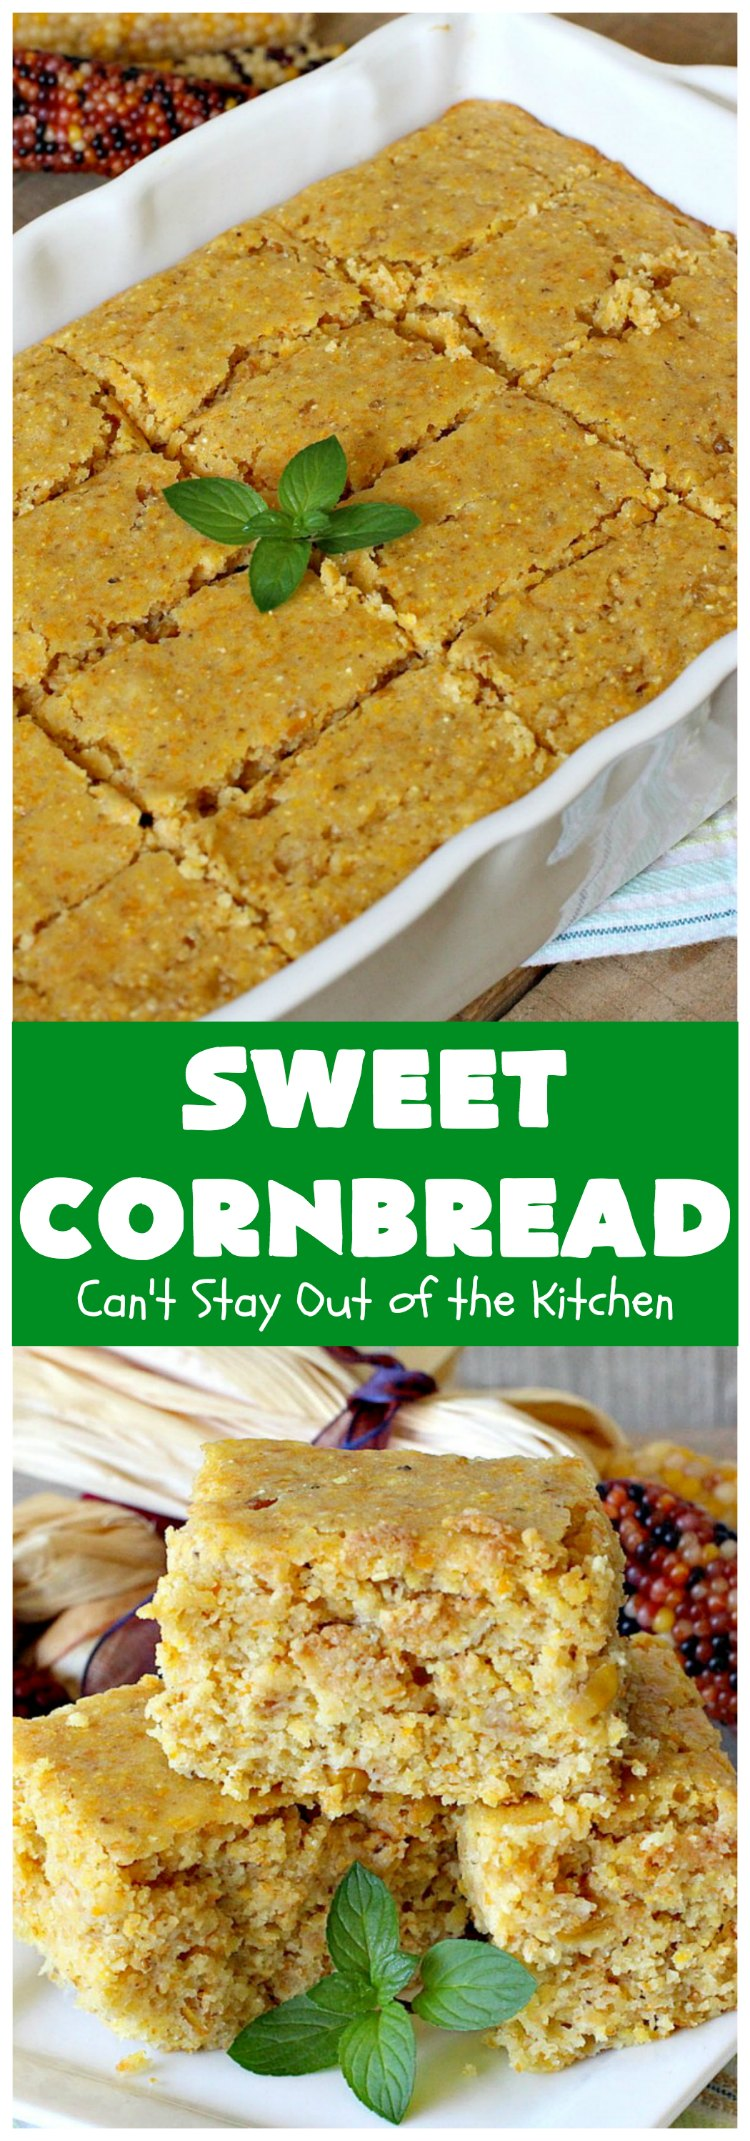 Sweet Cornbread | Can't Stay Out of the Kitchen